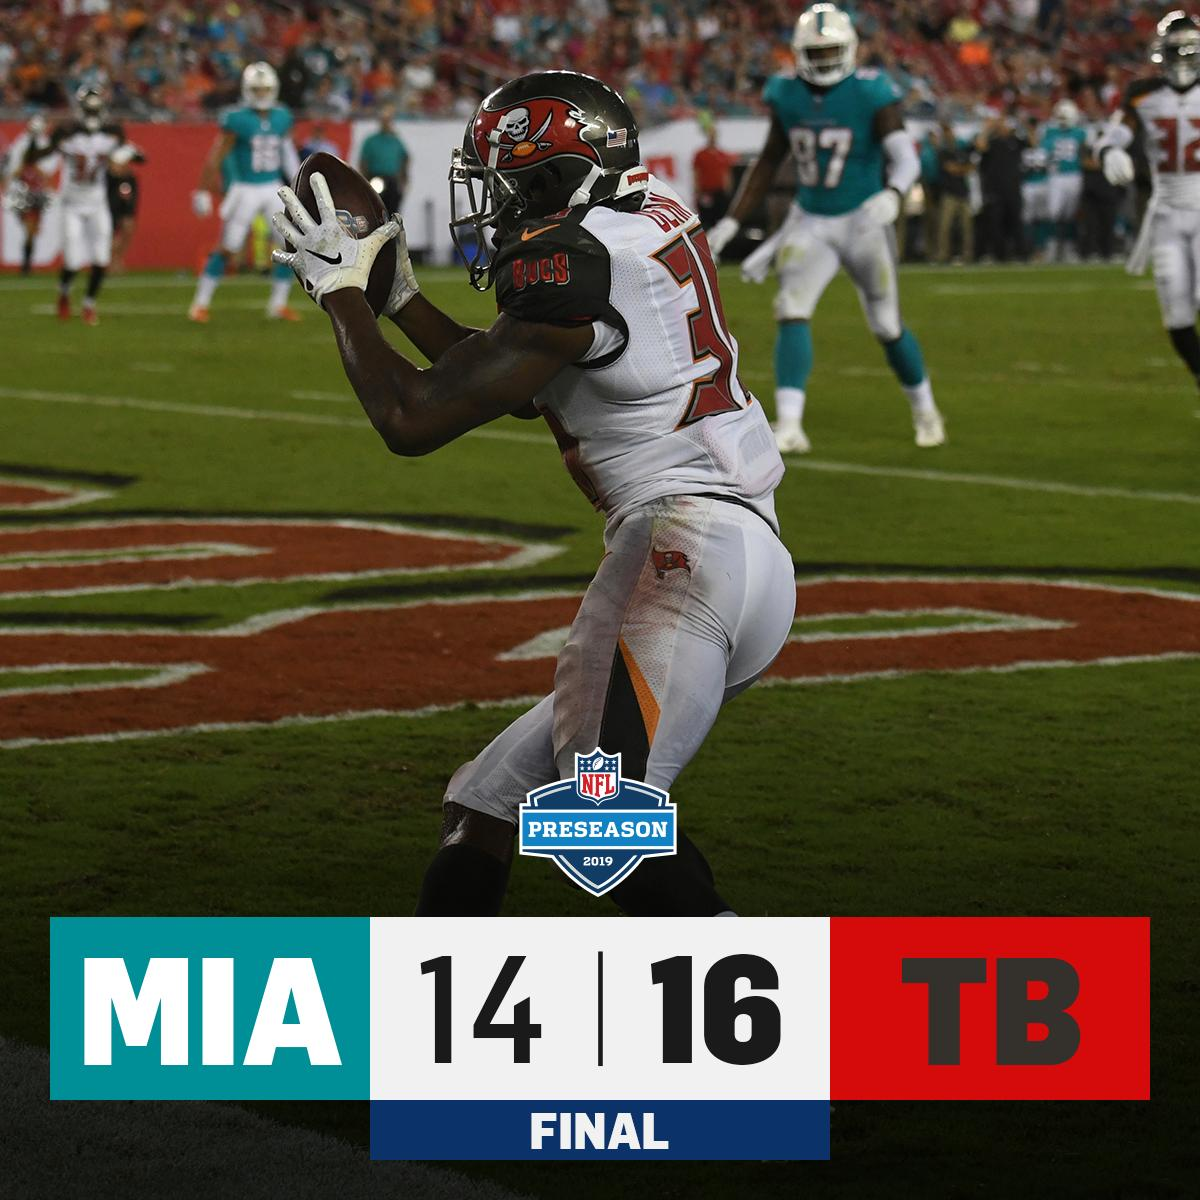 FINAL: @Buccaneers win on a last-second field goal! #MIAvsTB